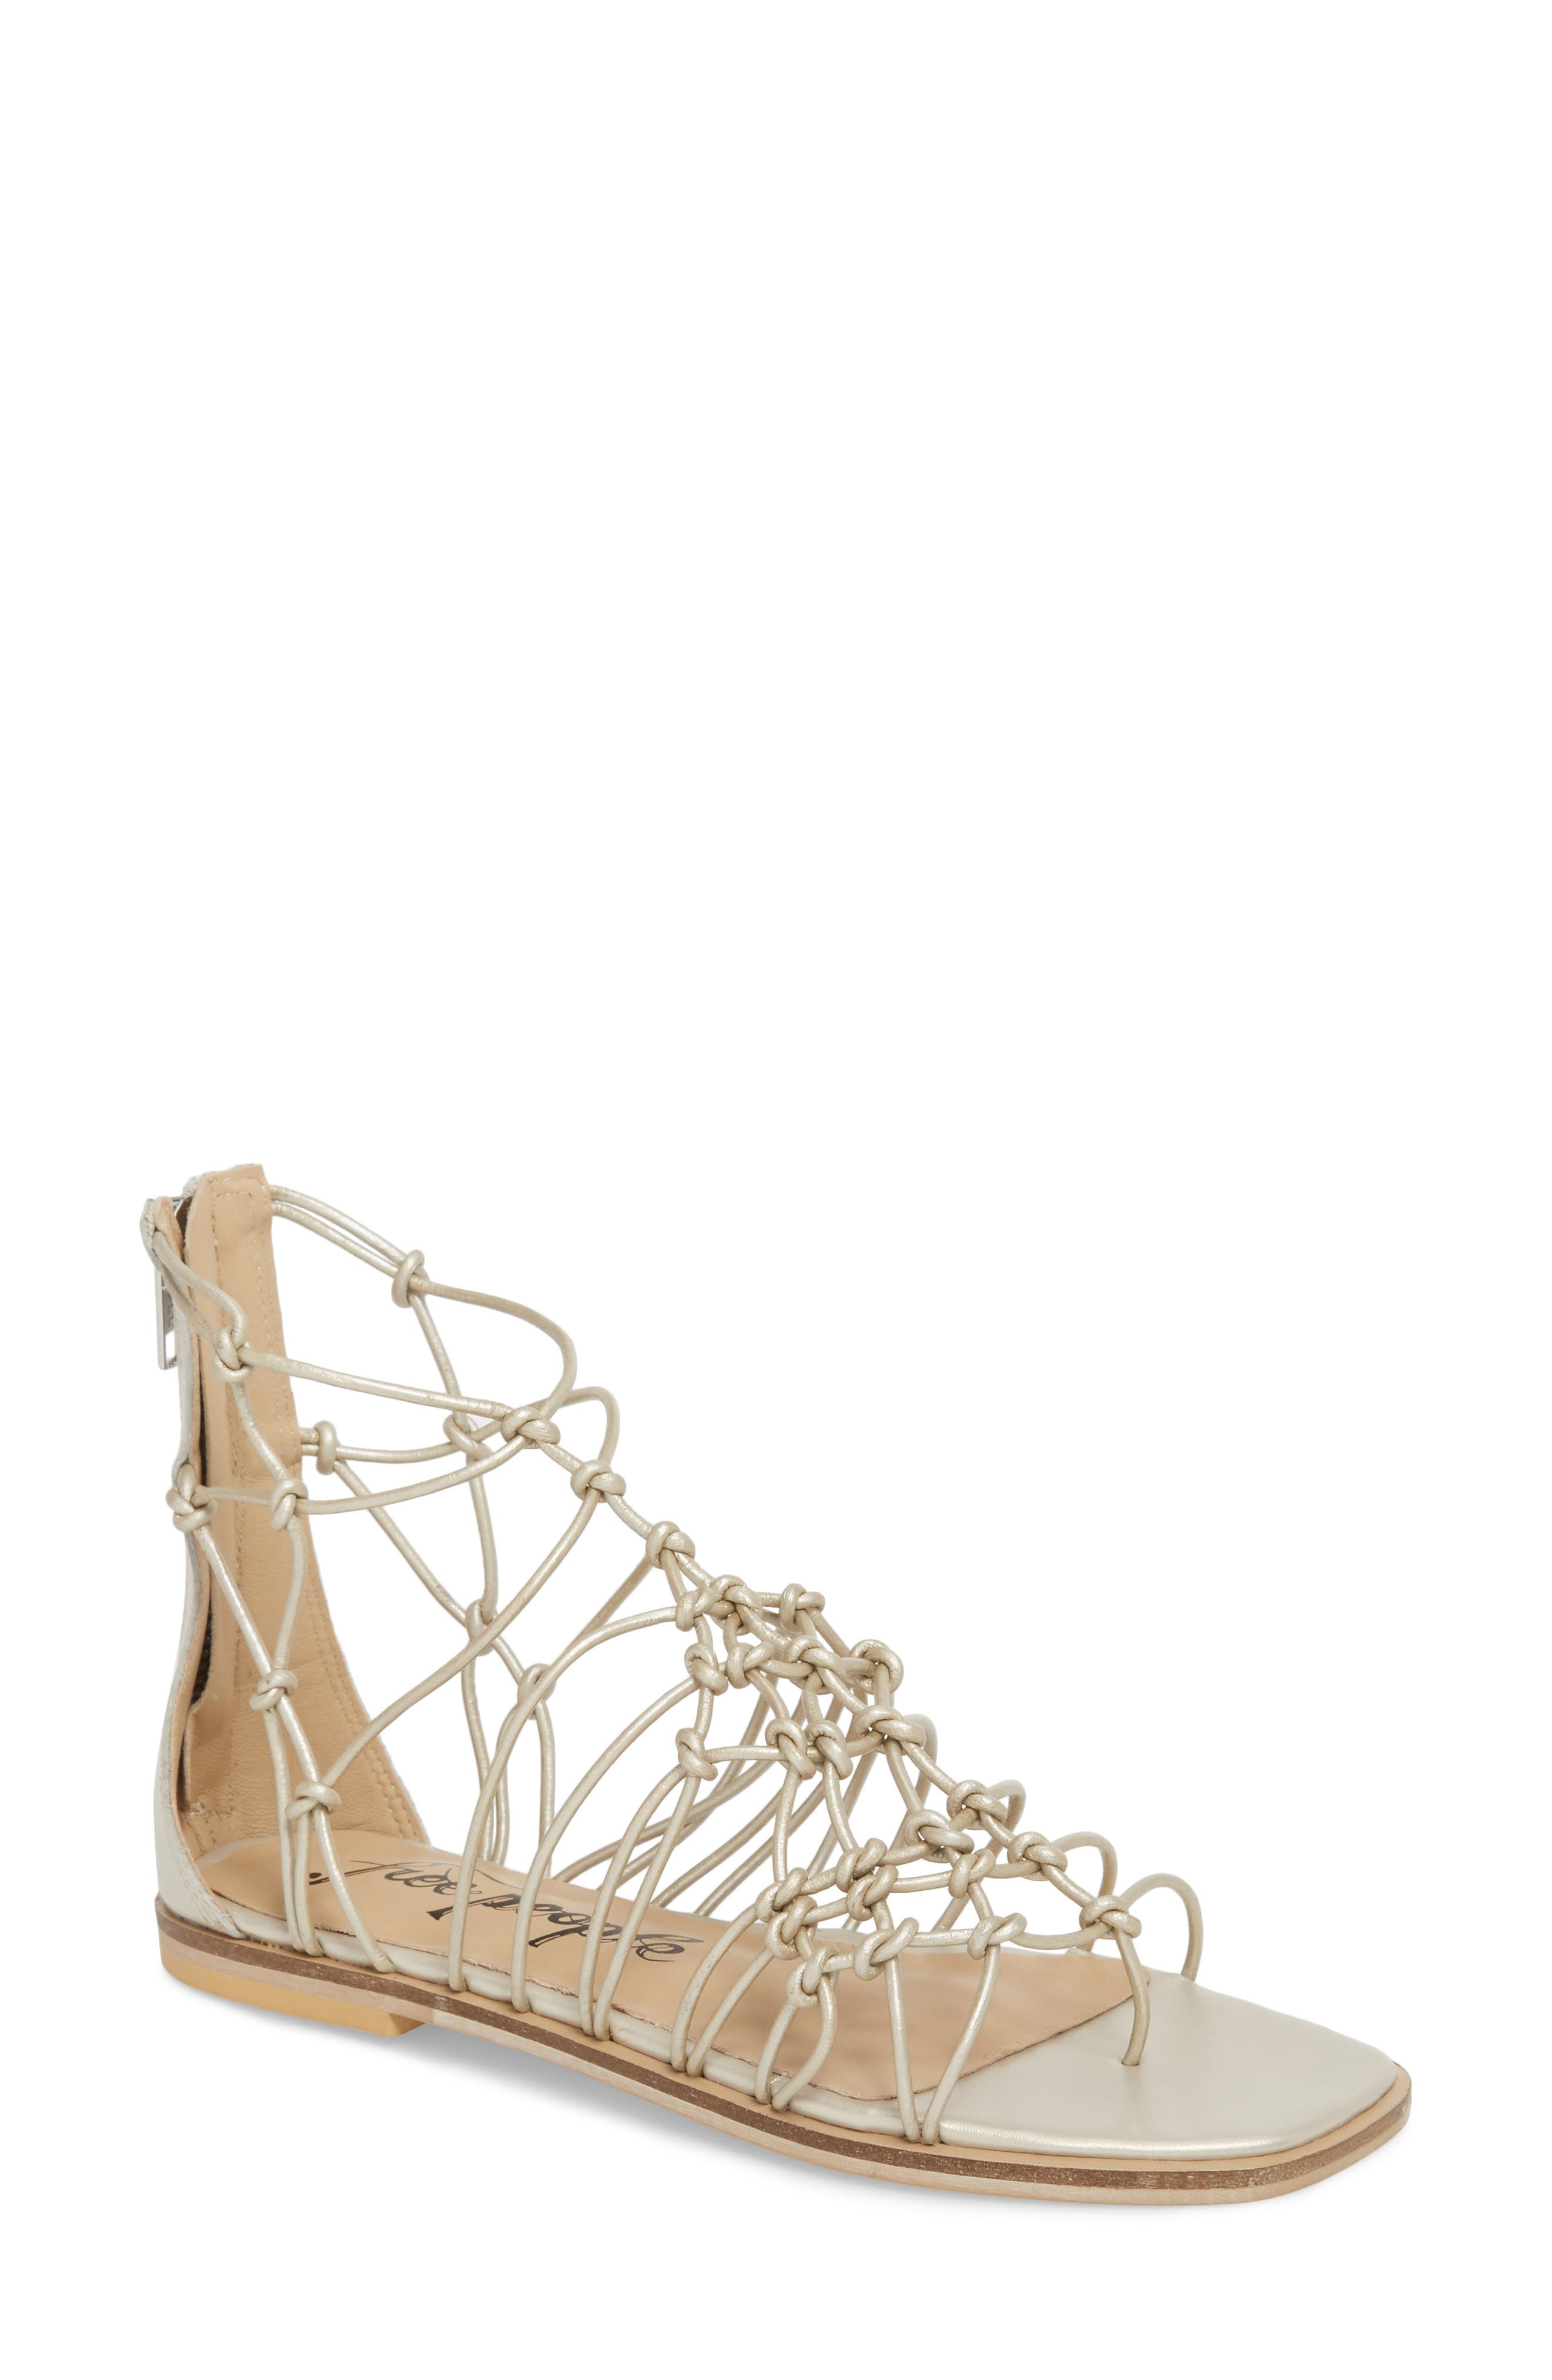 Forget Me Knot Gladiator Sandal,                             Main thumbnail 1, color,                             Silver